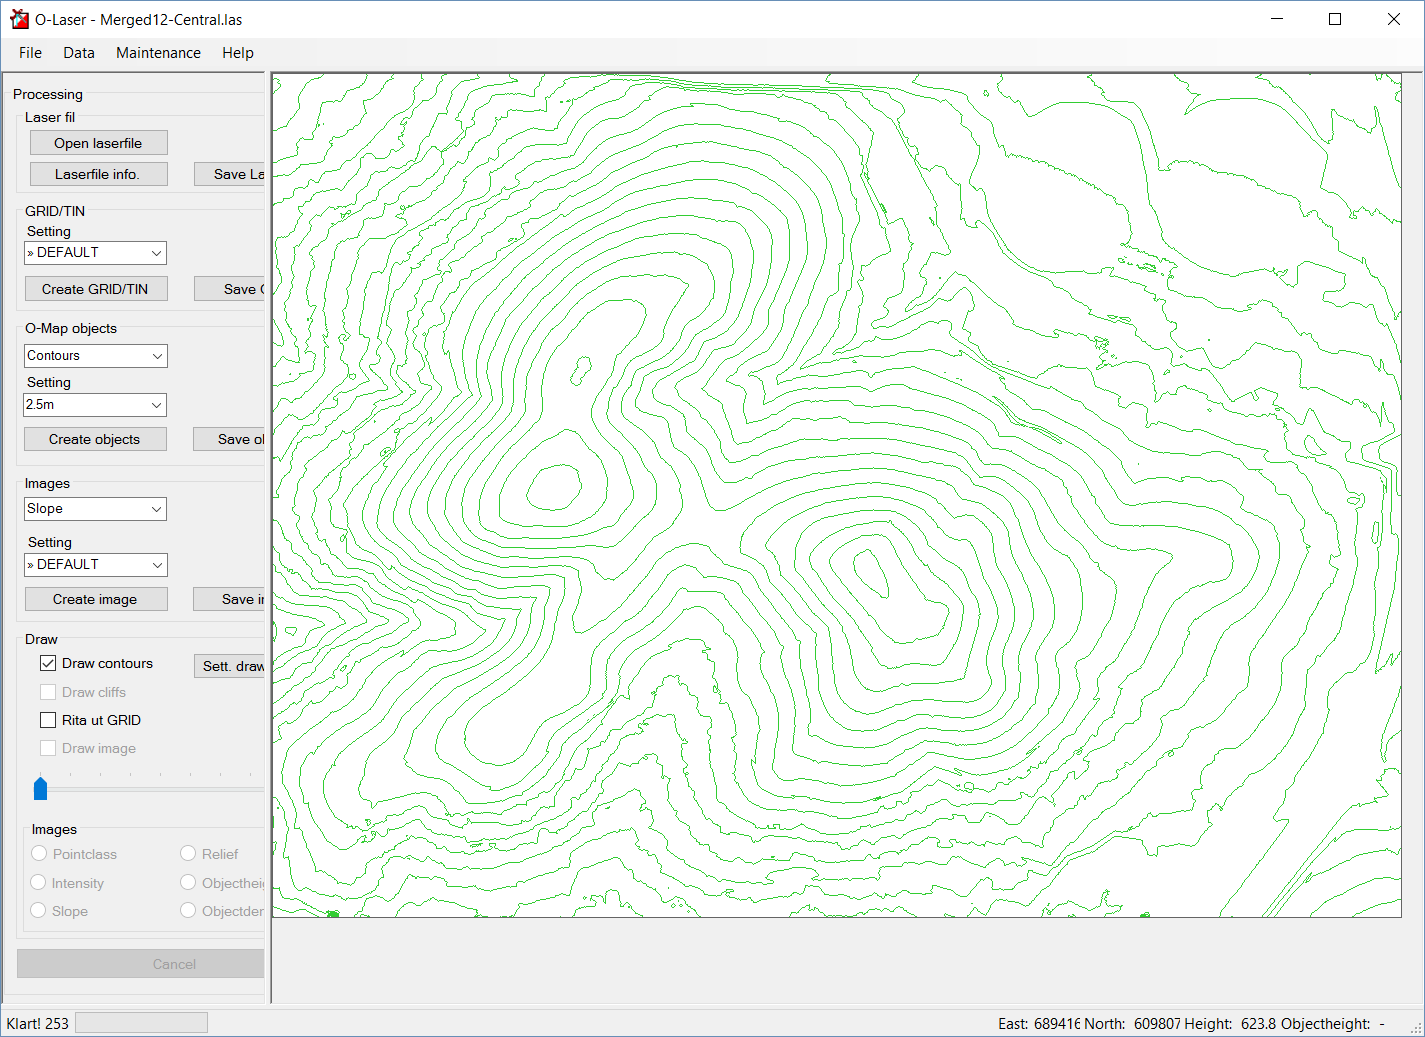 Generating contours and cliffs with OL Laser - Greg Wilson